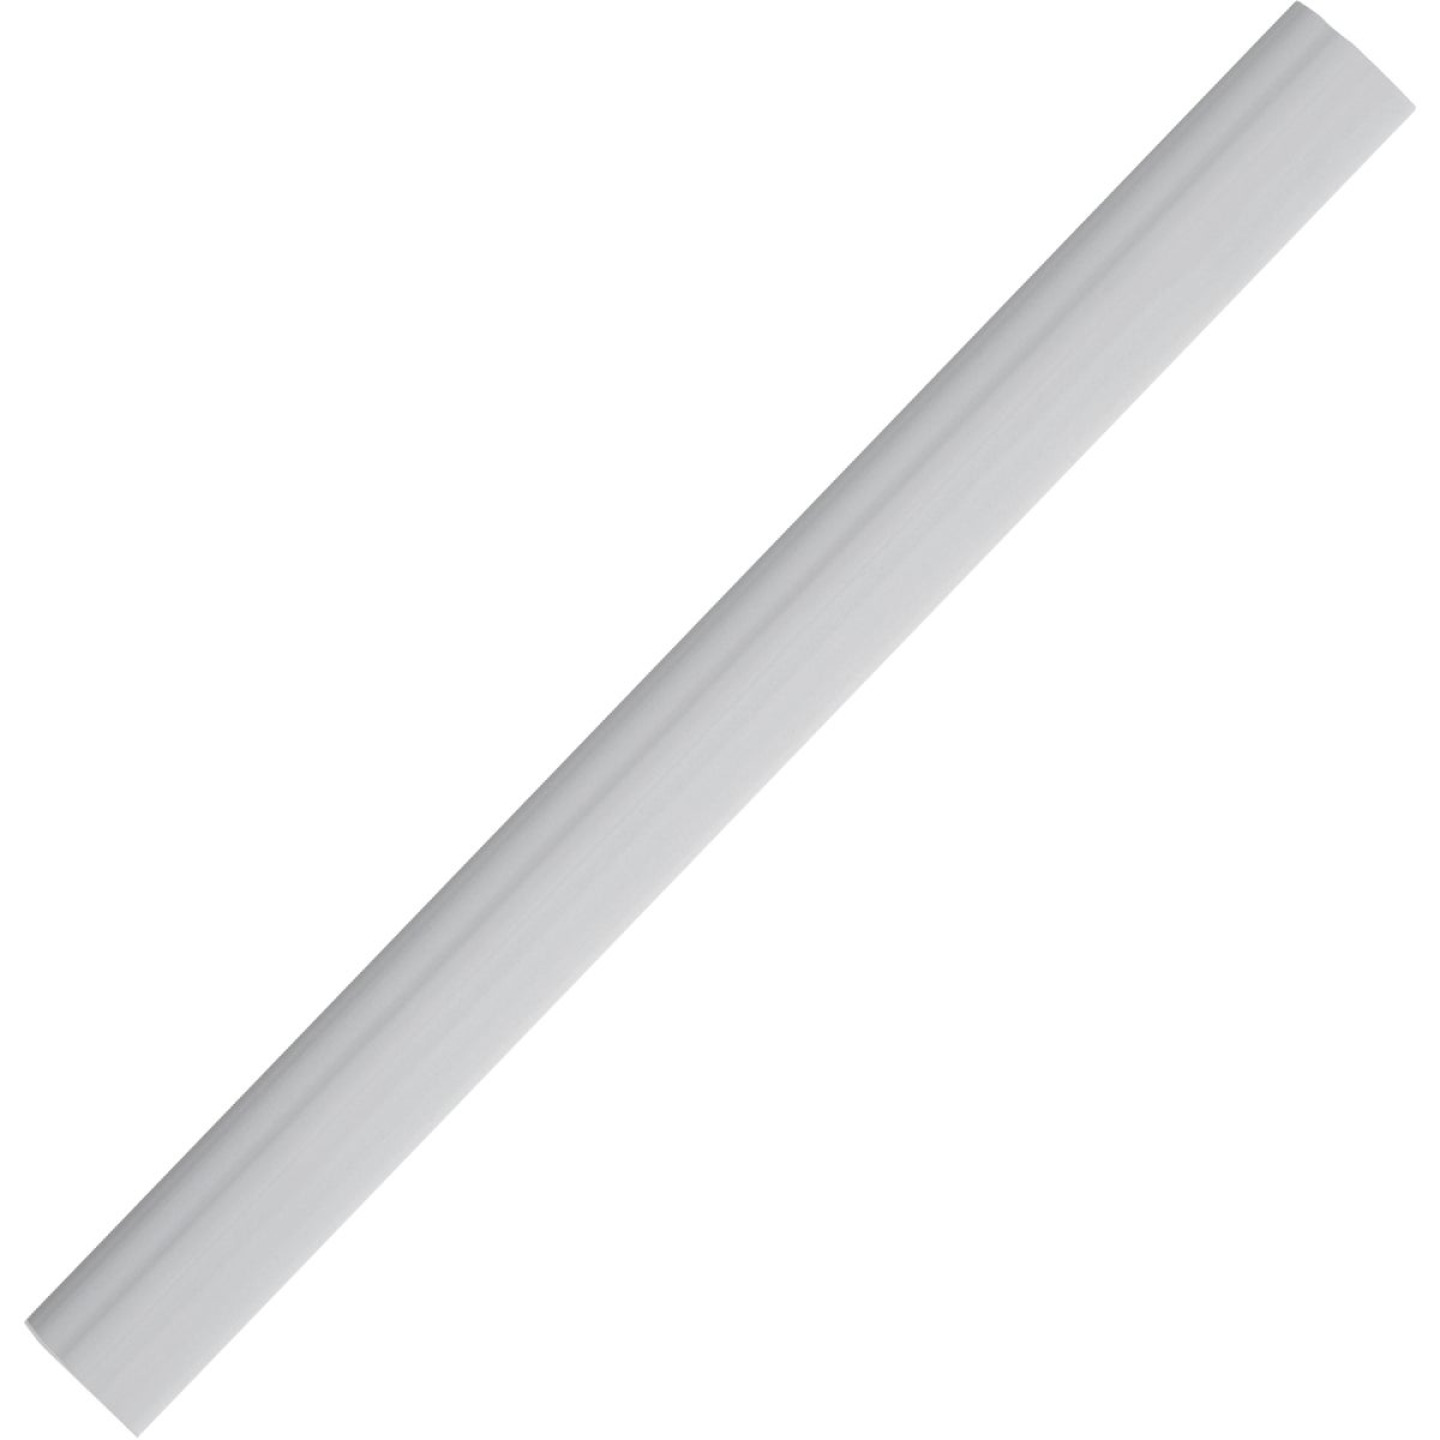 Kleen Seam 2-1/4 In. x 20-1/2 In. White Silicone Gap Protector Image 1